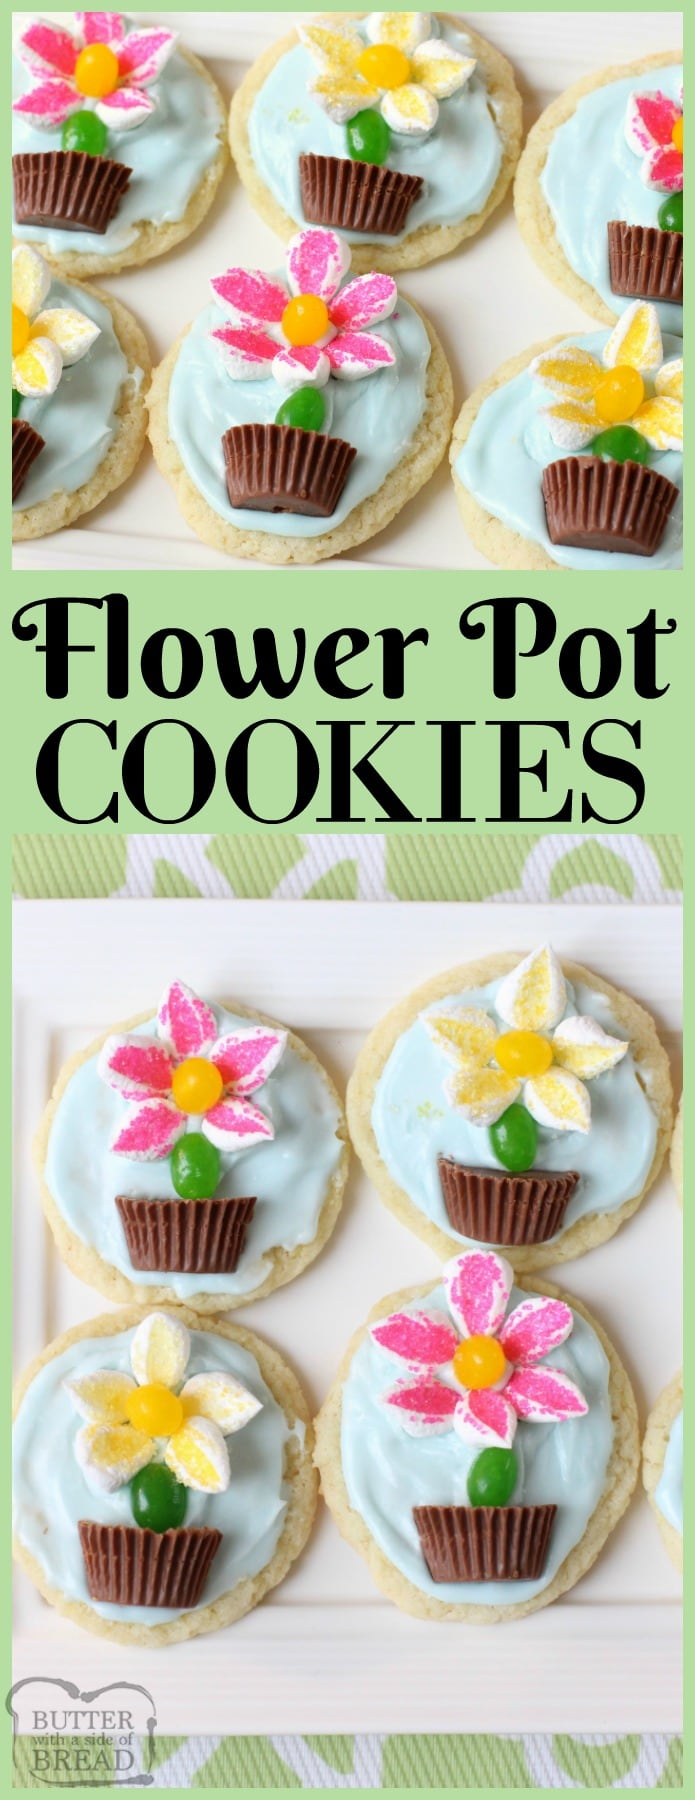 Flower Pot Cookies are easy to make and perfect for Spring baking! Everyone loves these cute treats with candy flowers in a chocolate pot on top!  Cute, colorful Spring flower cookie recipe from Butter With A Side of Bread